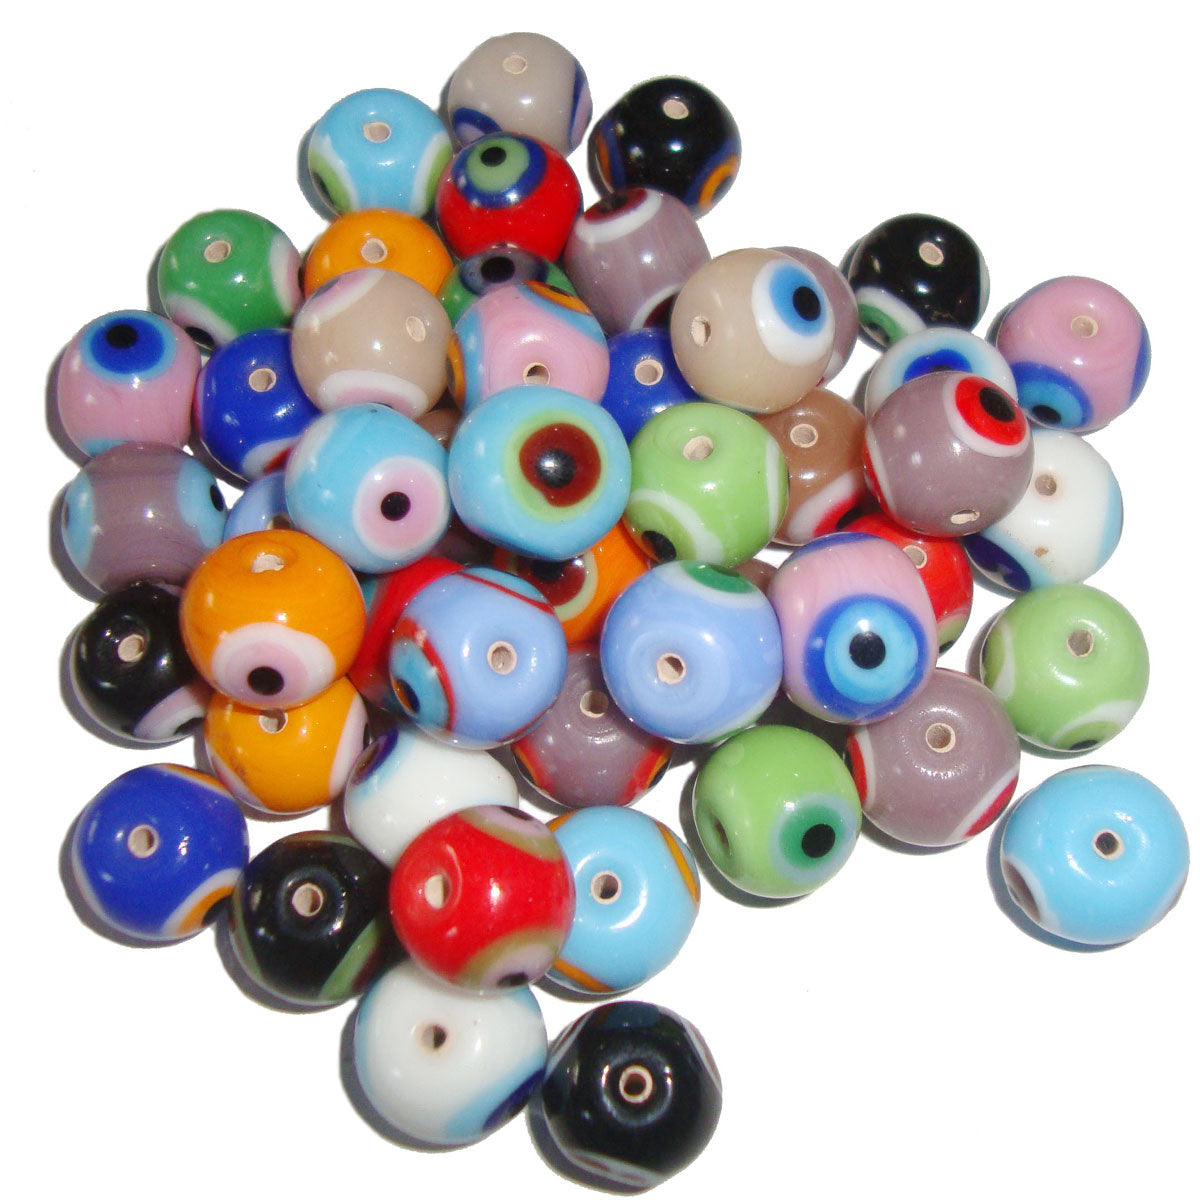 Eye Decoration Round Mix solid color lampwork glass beads for jewelry making